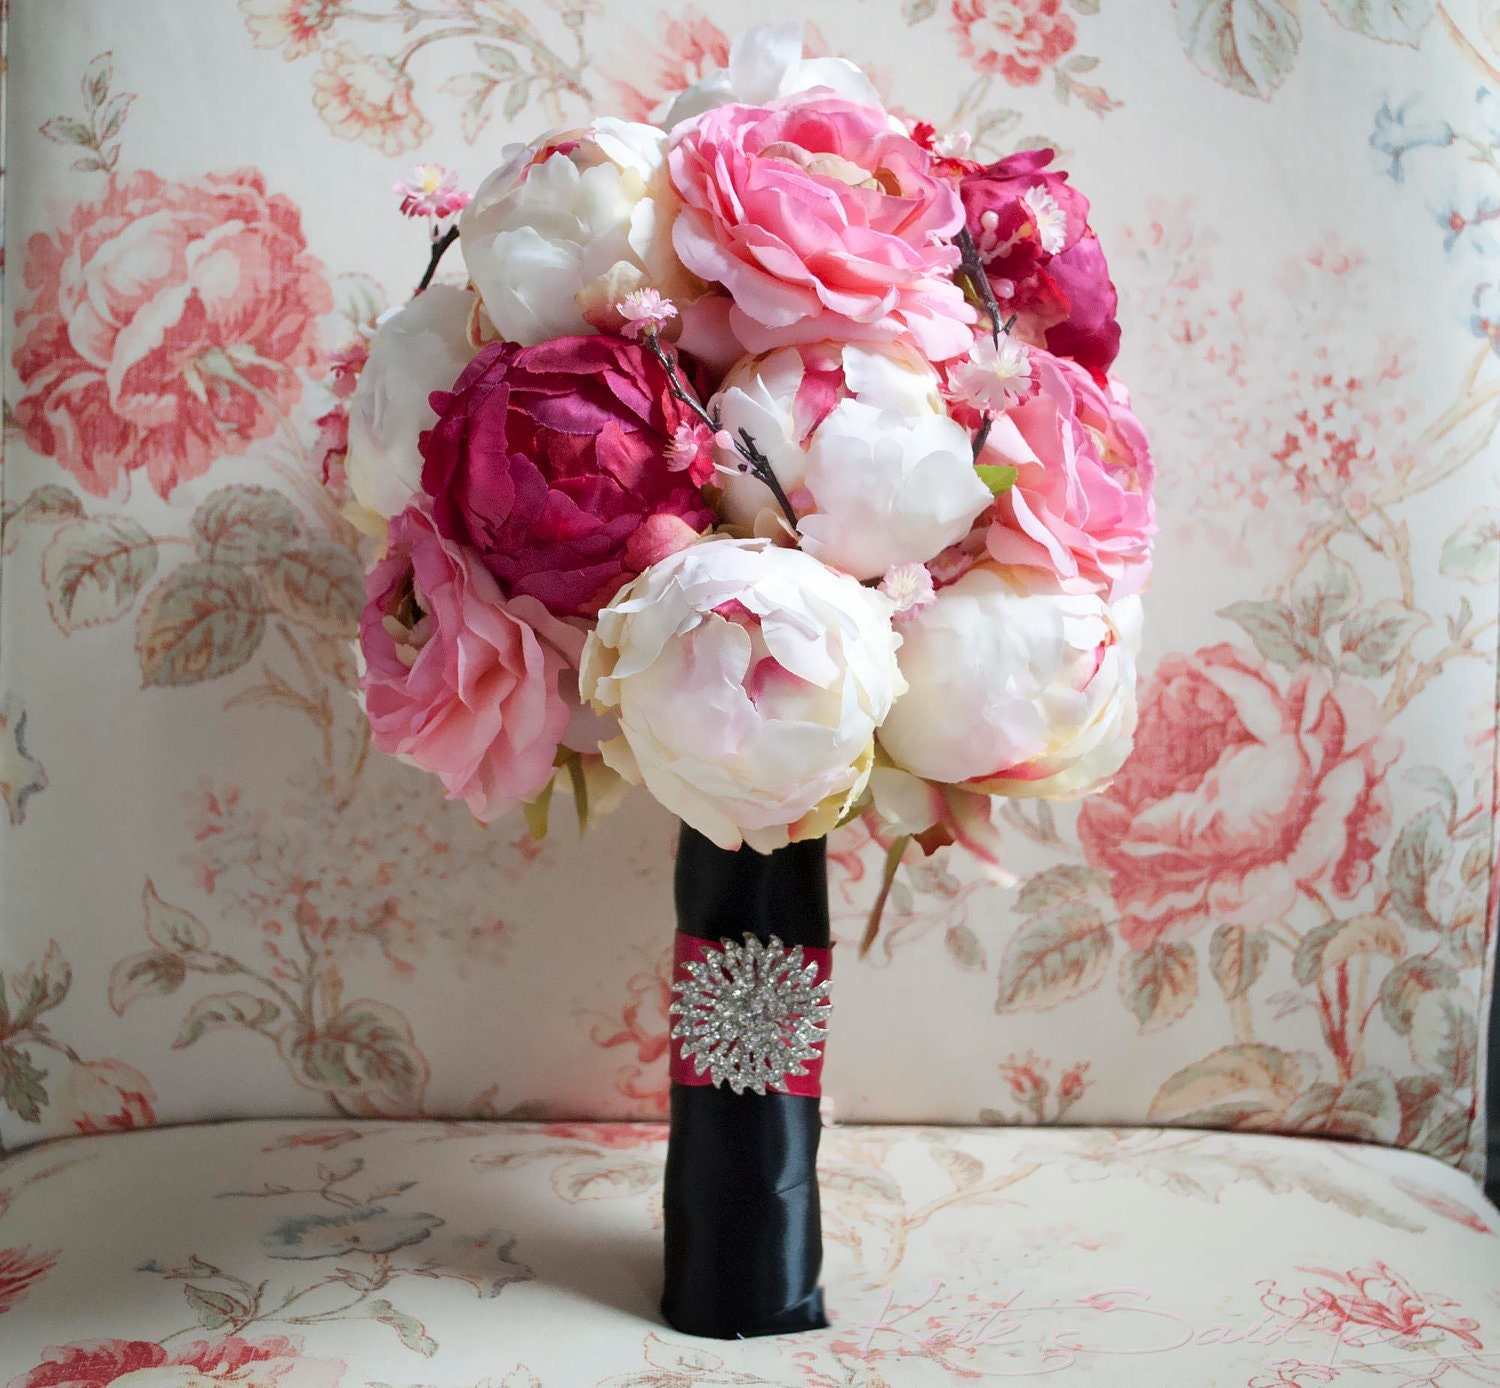 Peony Flower Bouquet Wedding: Cherry Blossom And Peony Wedding Bouquet Black And Pink